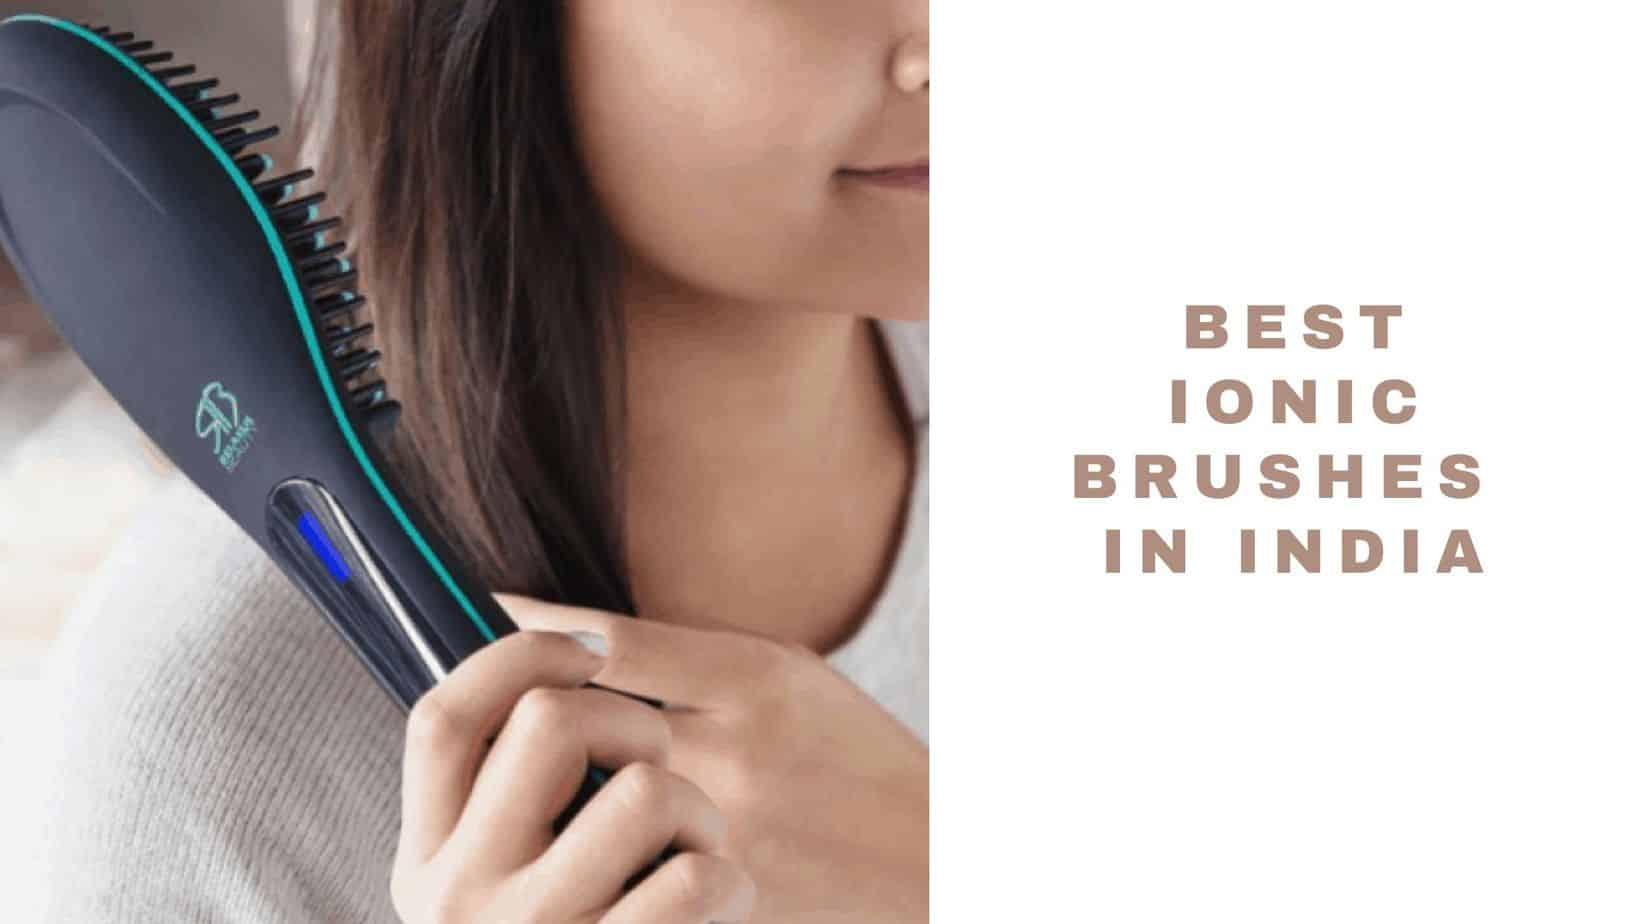 ionic brushes in india